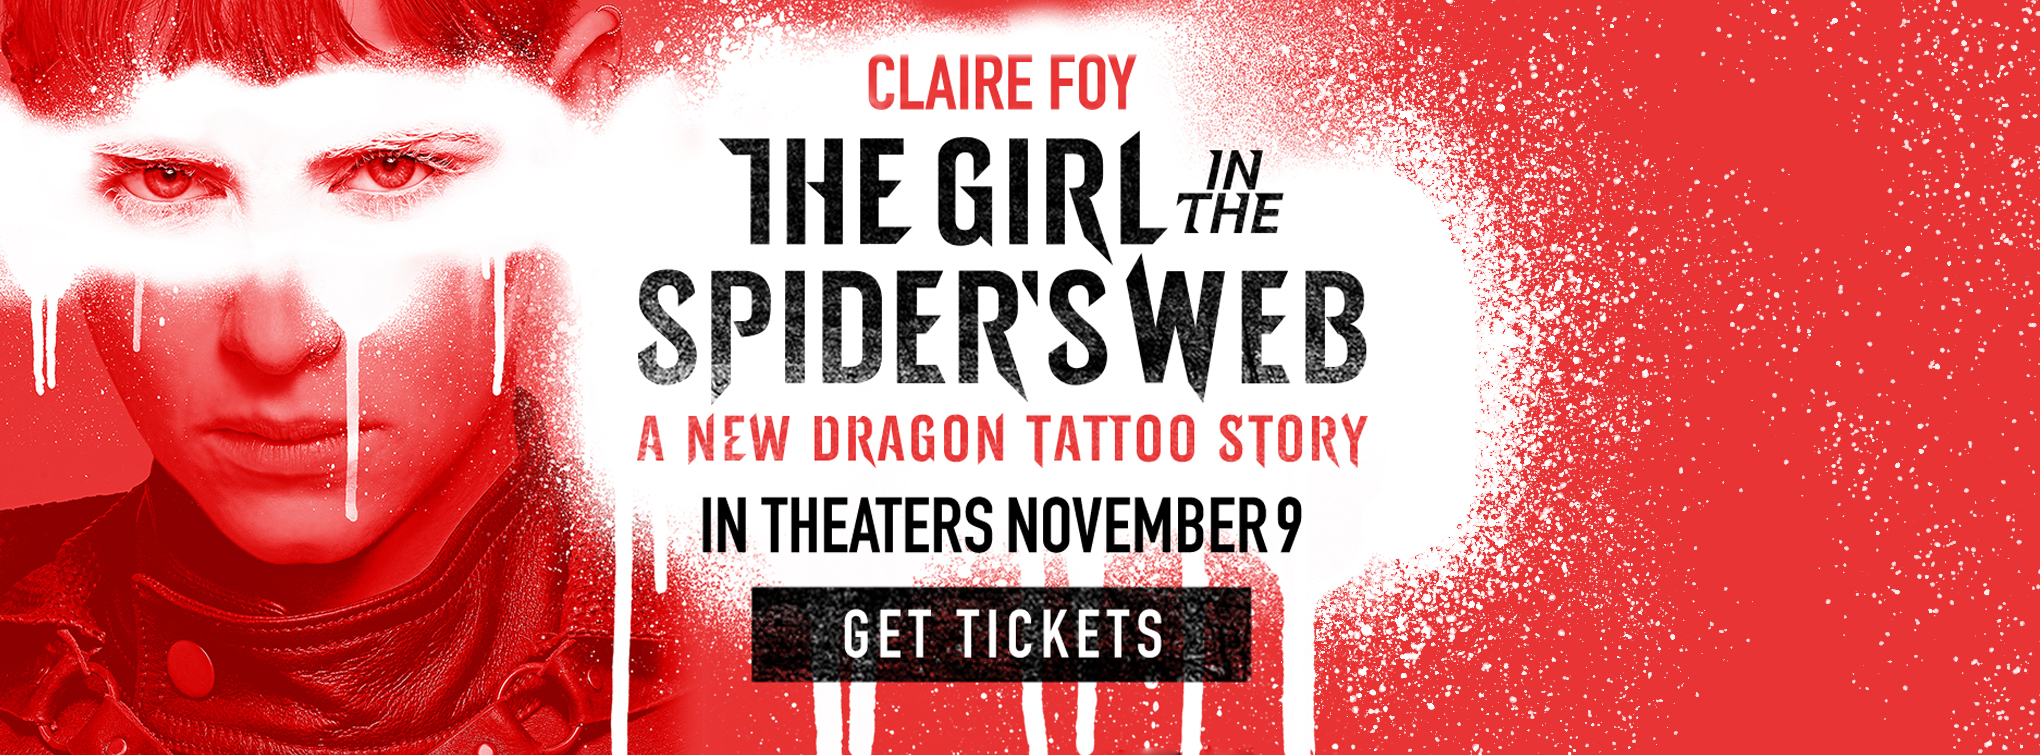 Slider image for the Girl in the Spider's Web